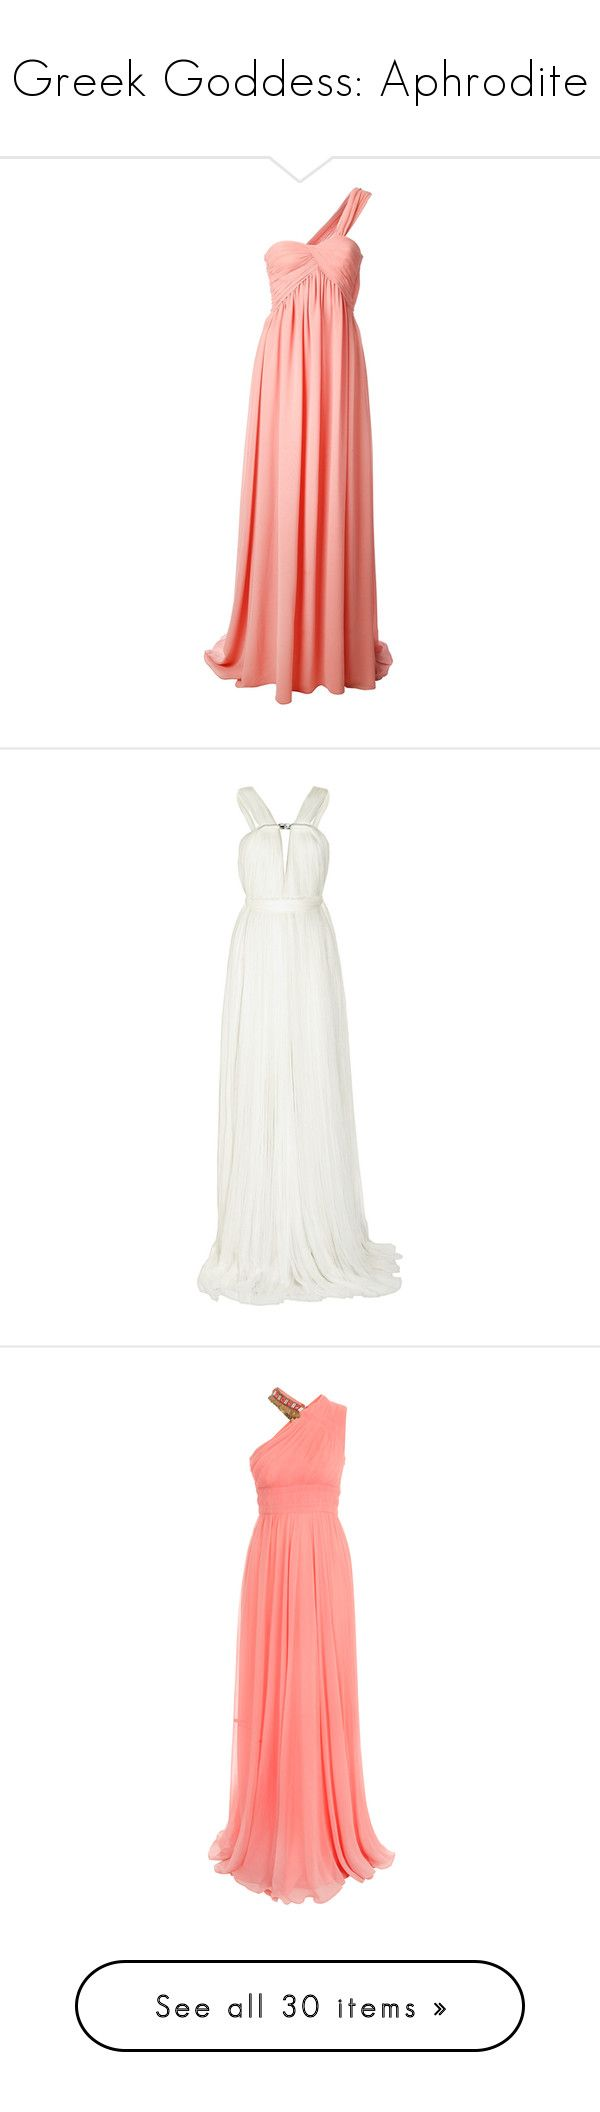 """Greek Goddess: Aphrodite"" by storycosmicjasmine ❤ liked on Polyvore featuring dresses, gowns, long dress, red gown, one shoulder evening gowns, red evening gowns, coral dresses, red ball gown, vestidos and long dresses"